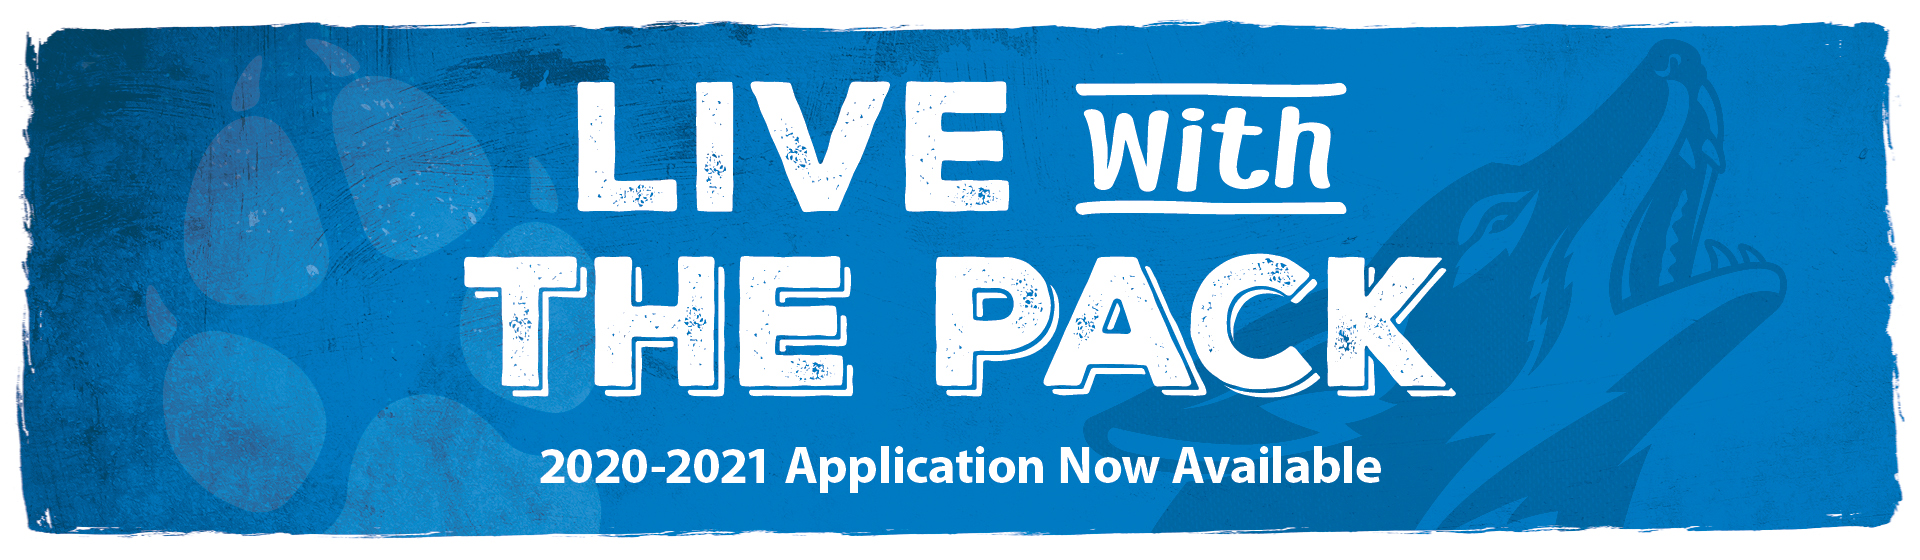 Live with the Pack 2020-2021 Application Now Available